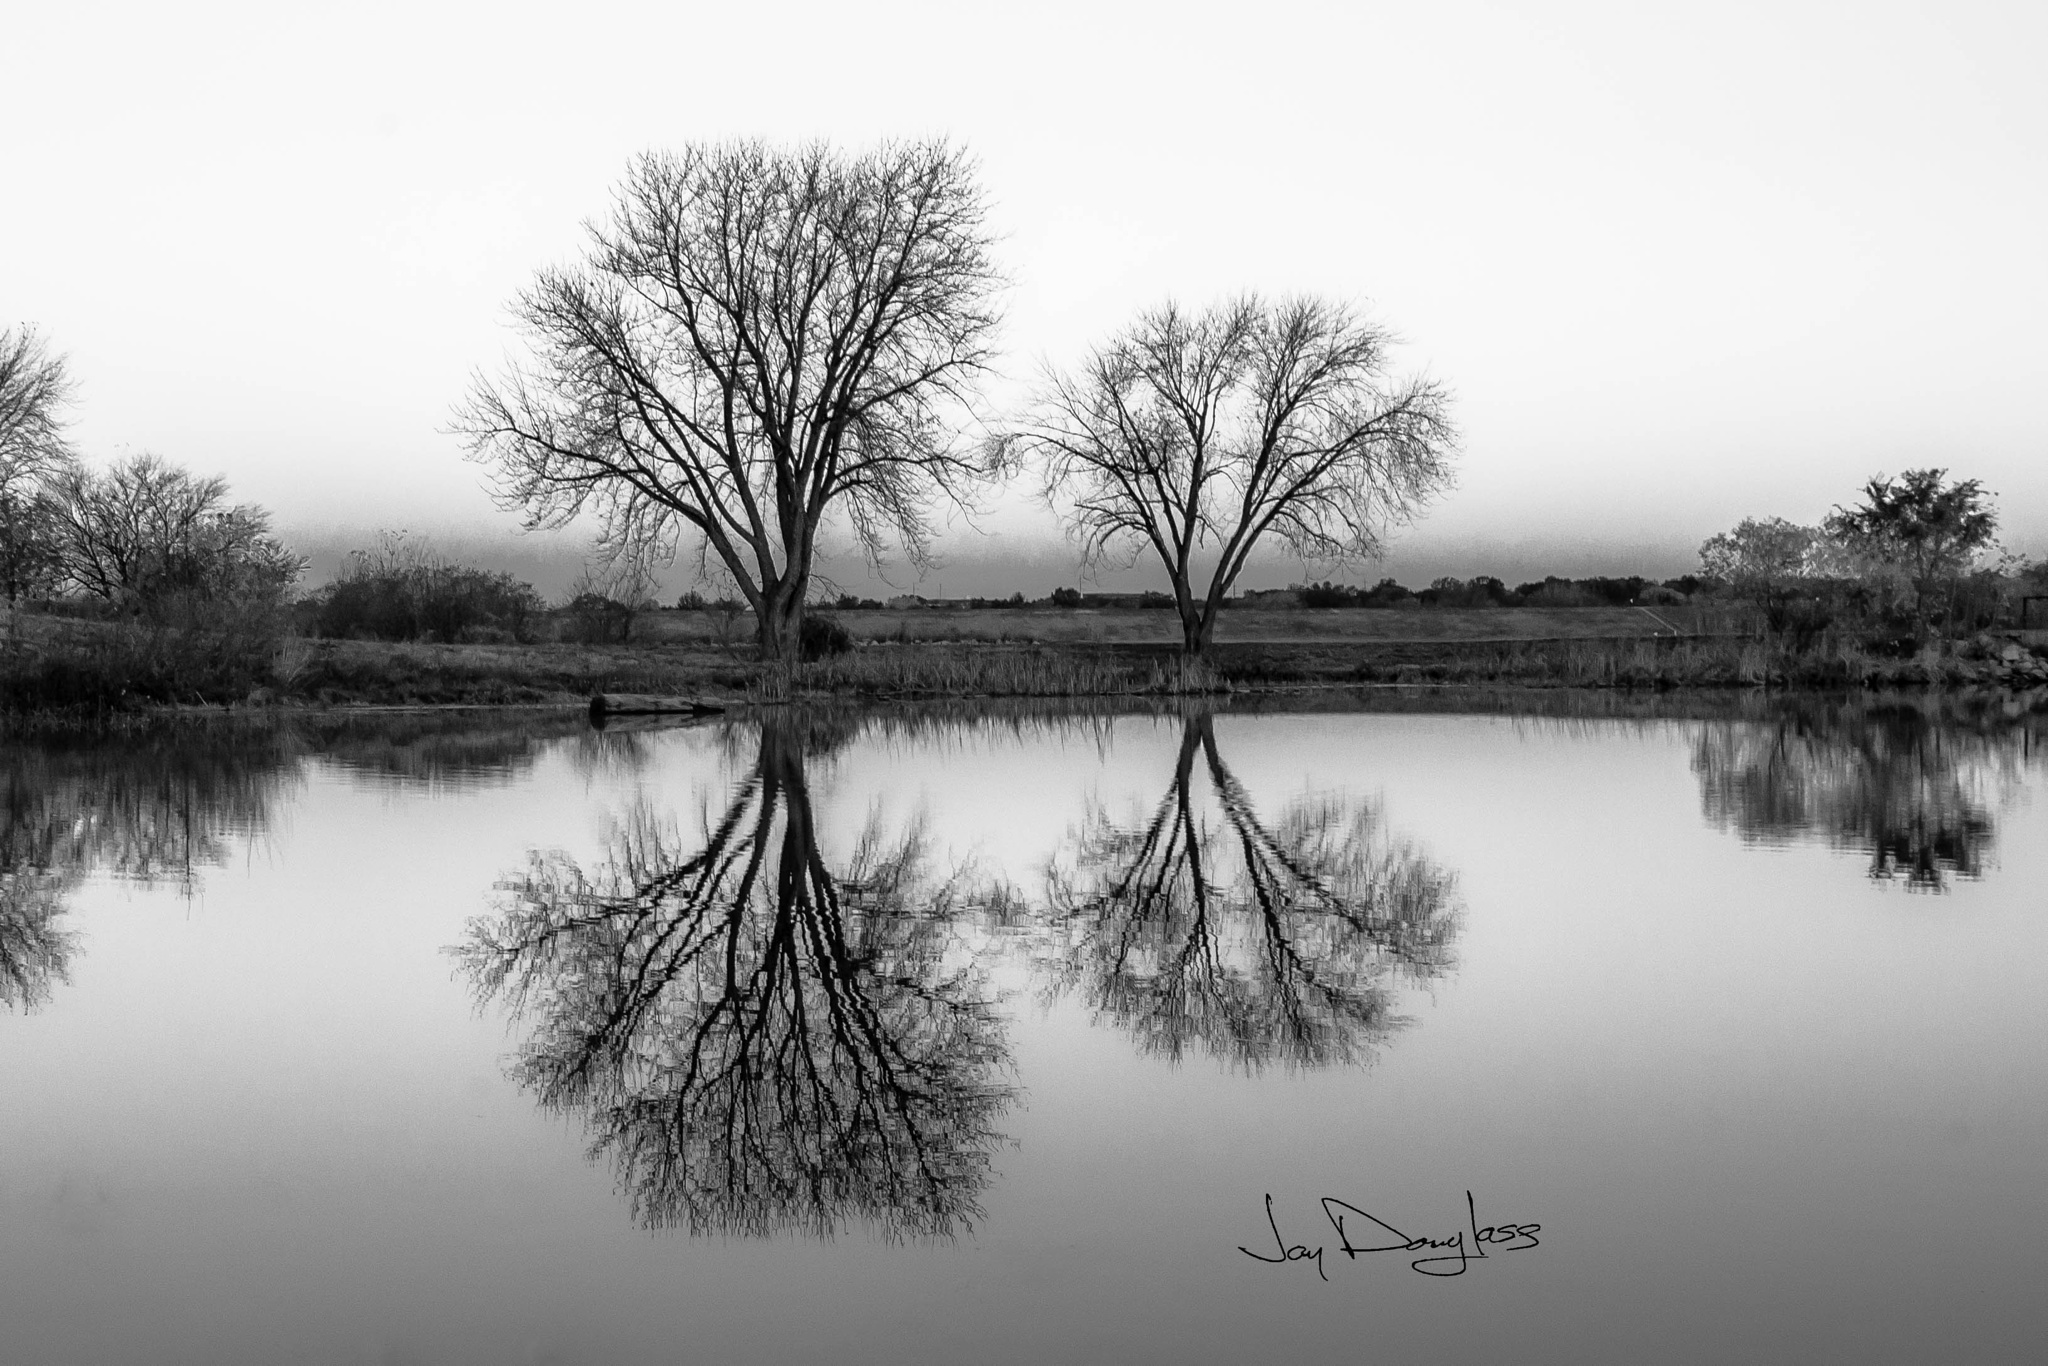 Tree Reflection B&W by Jay Douglass